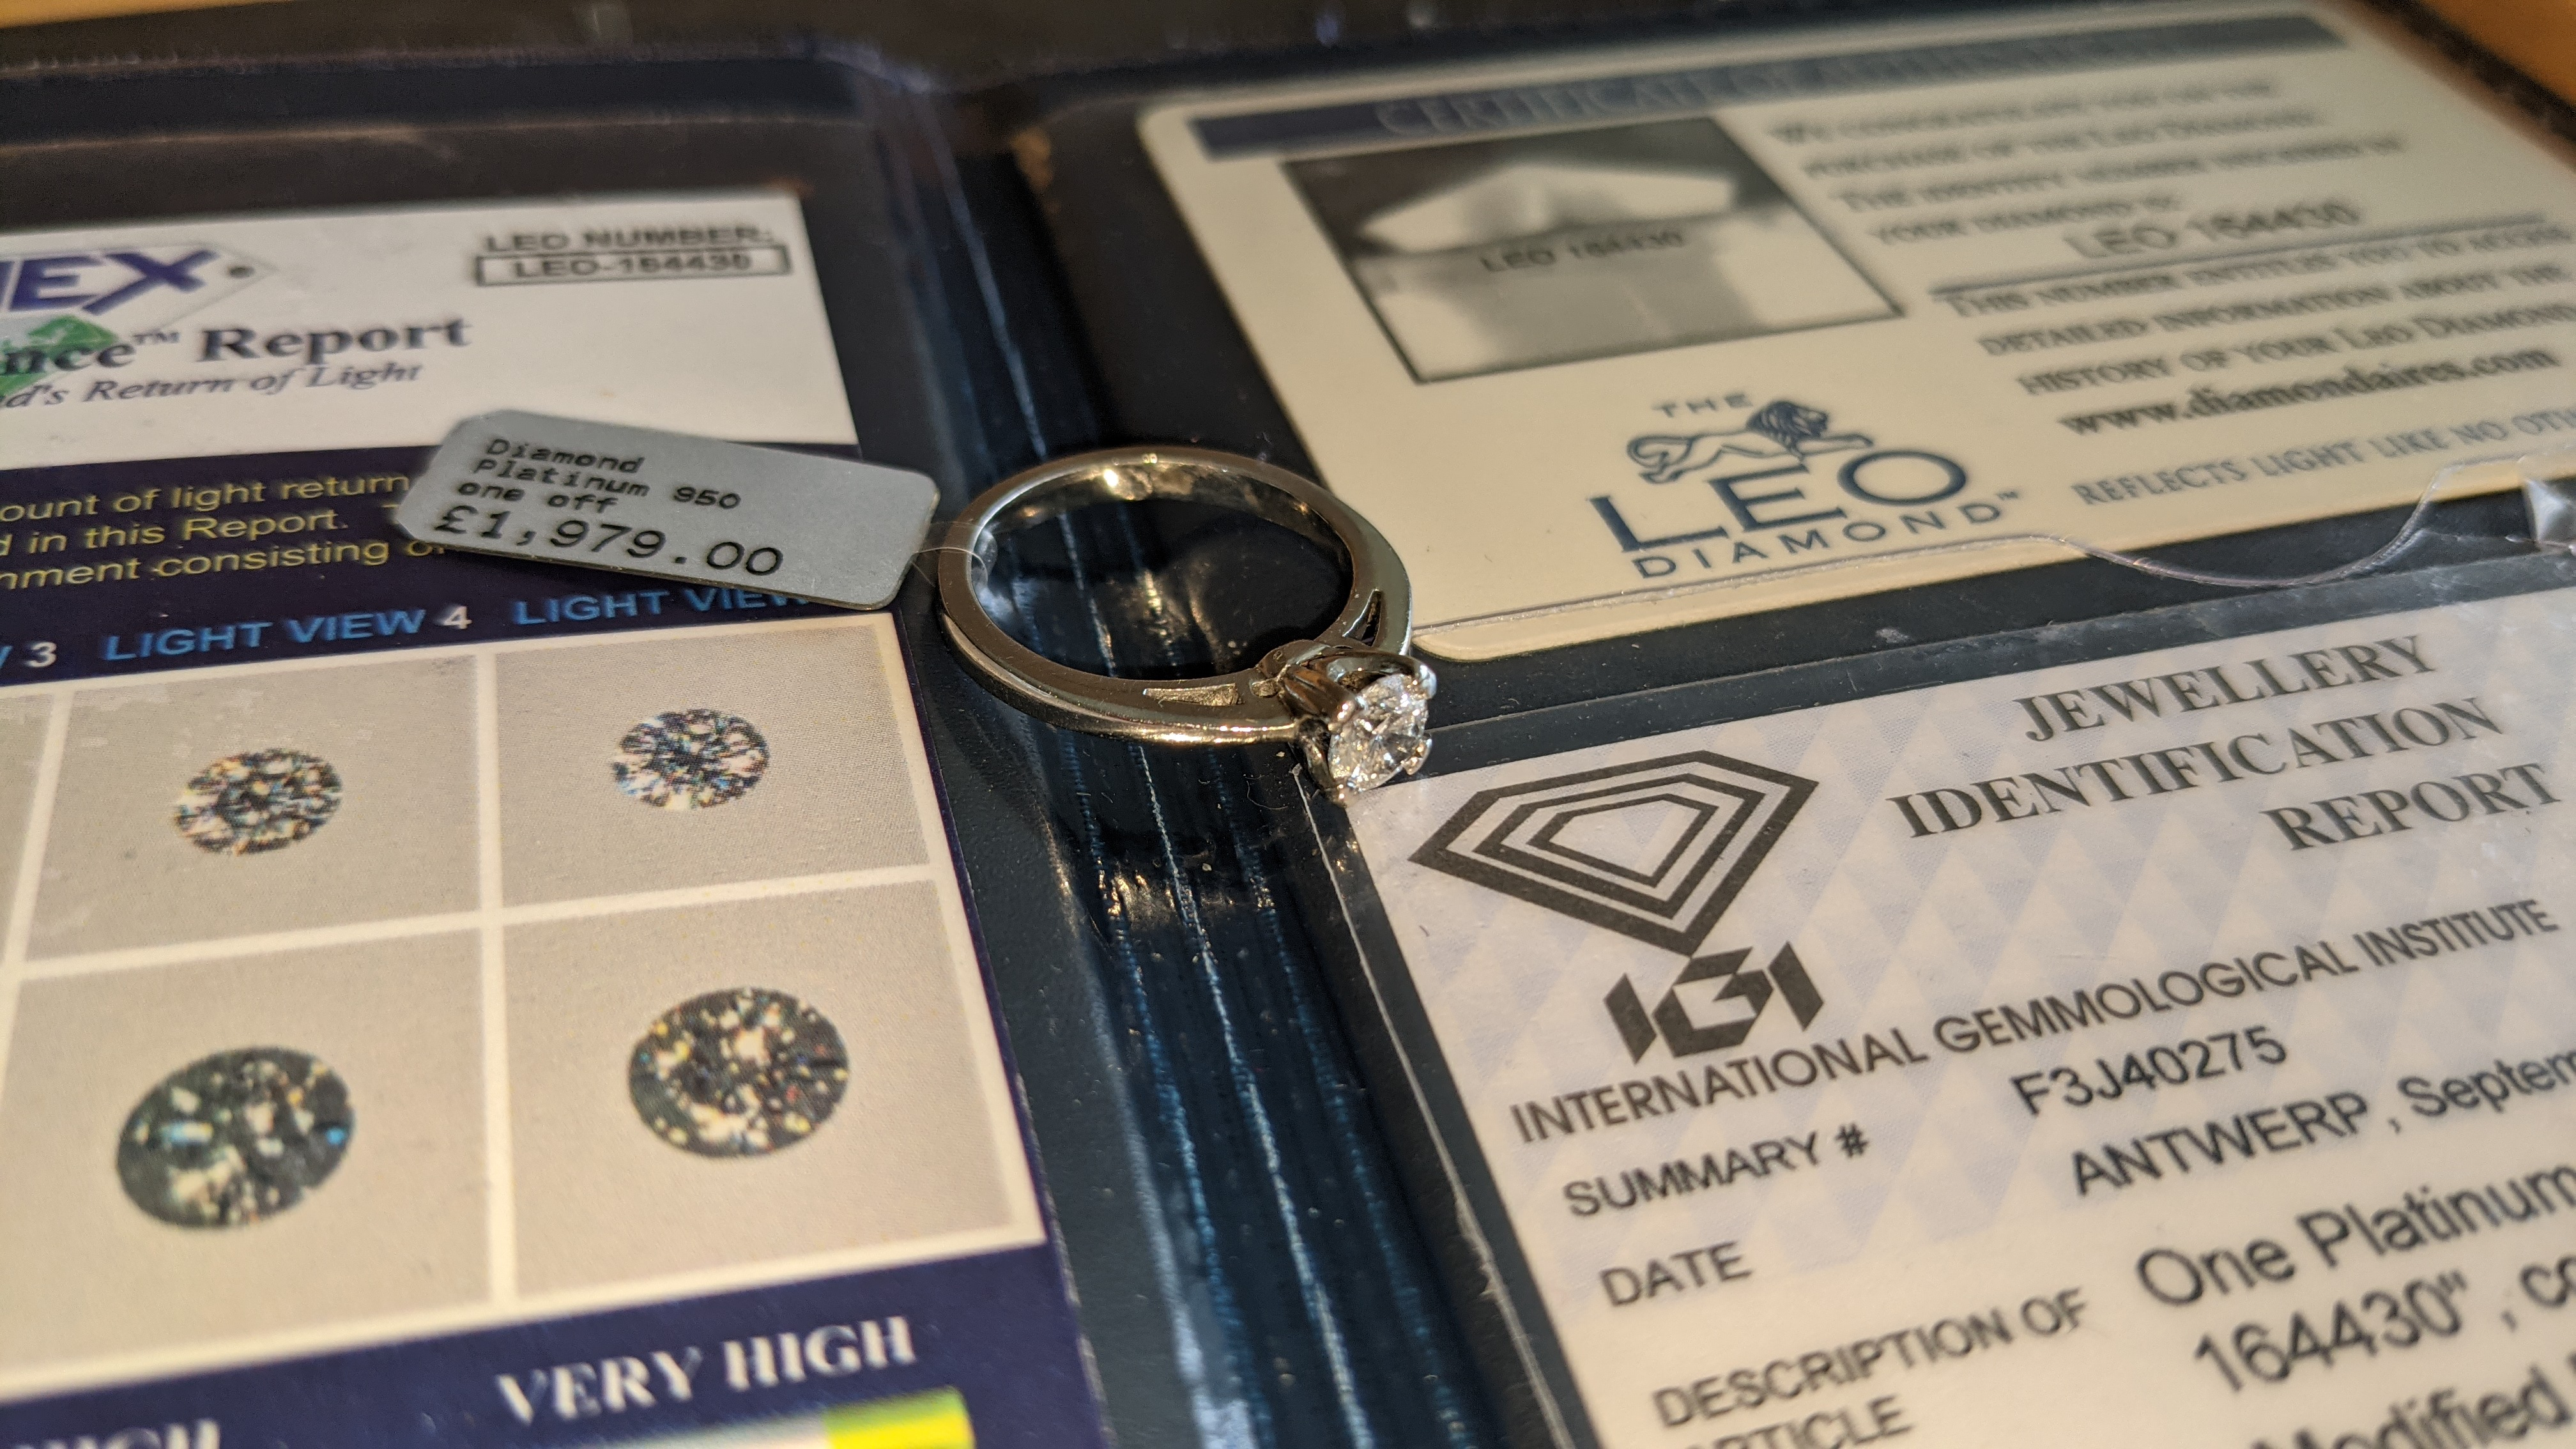 Platinum 950 ring with 0.50ct diamond. Includes diamond report/certification indicating the central - Image 21 of 25